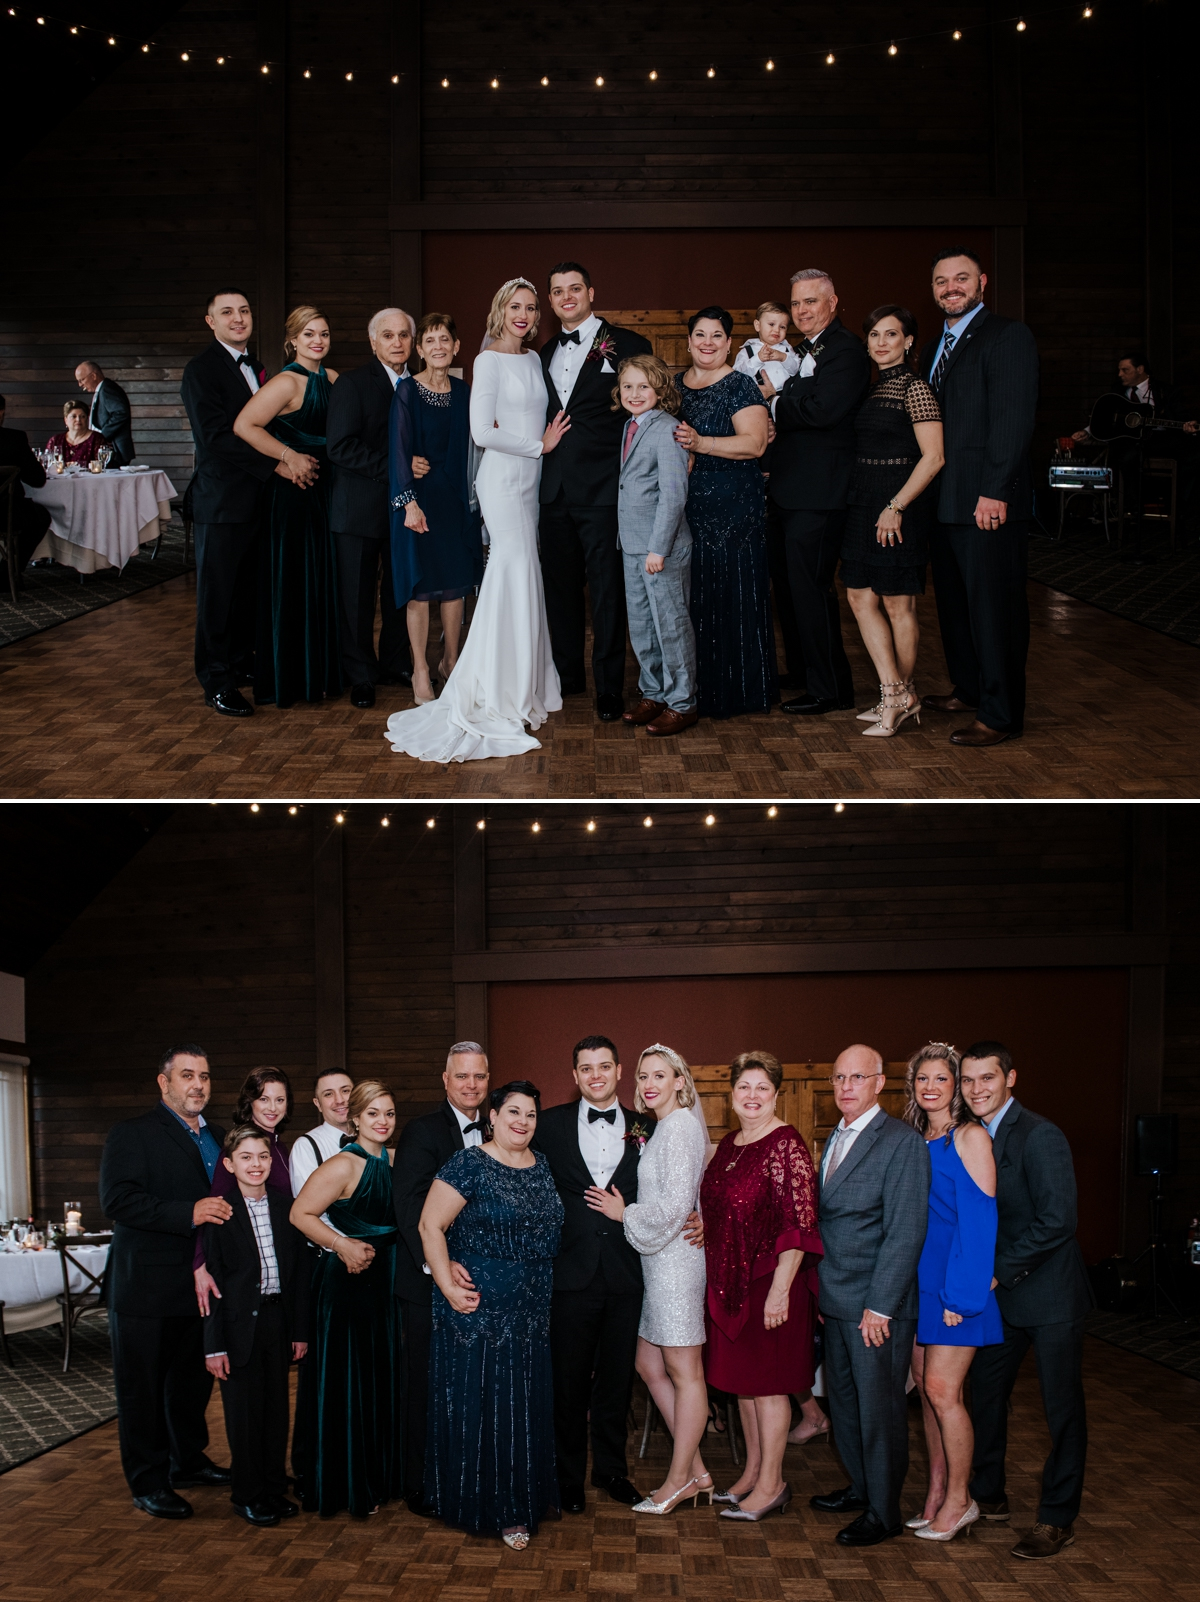 hollow brook wedding reception in cortlandt manor, ny